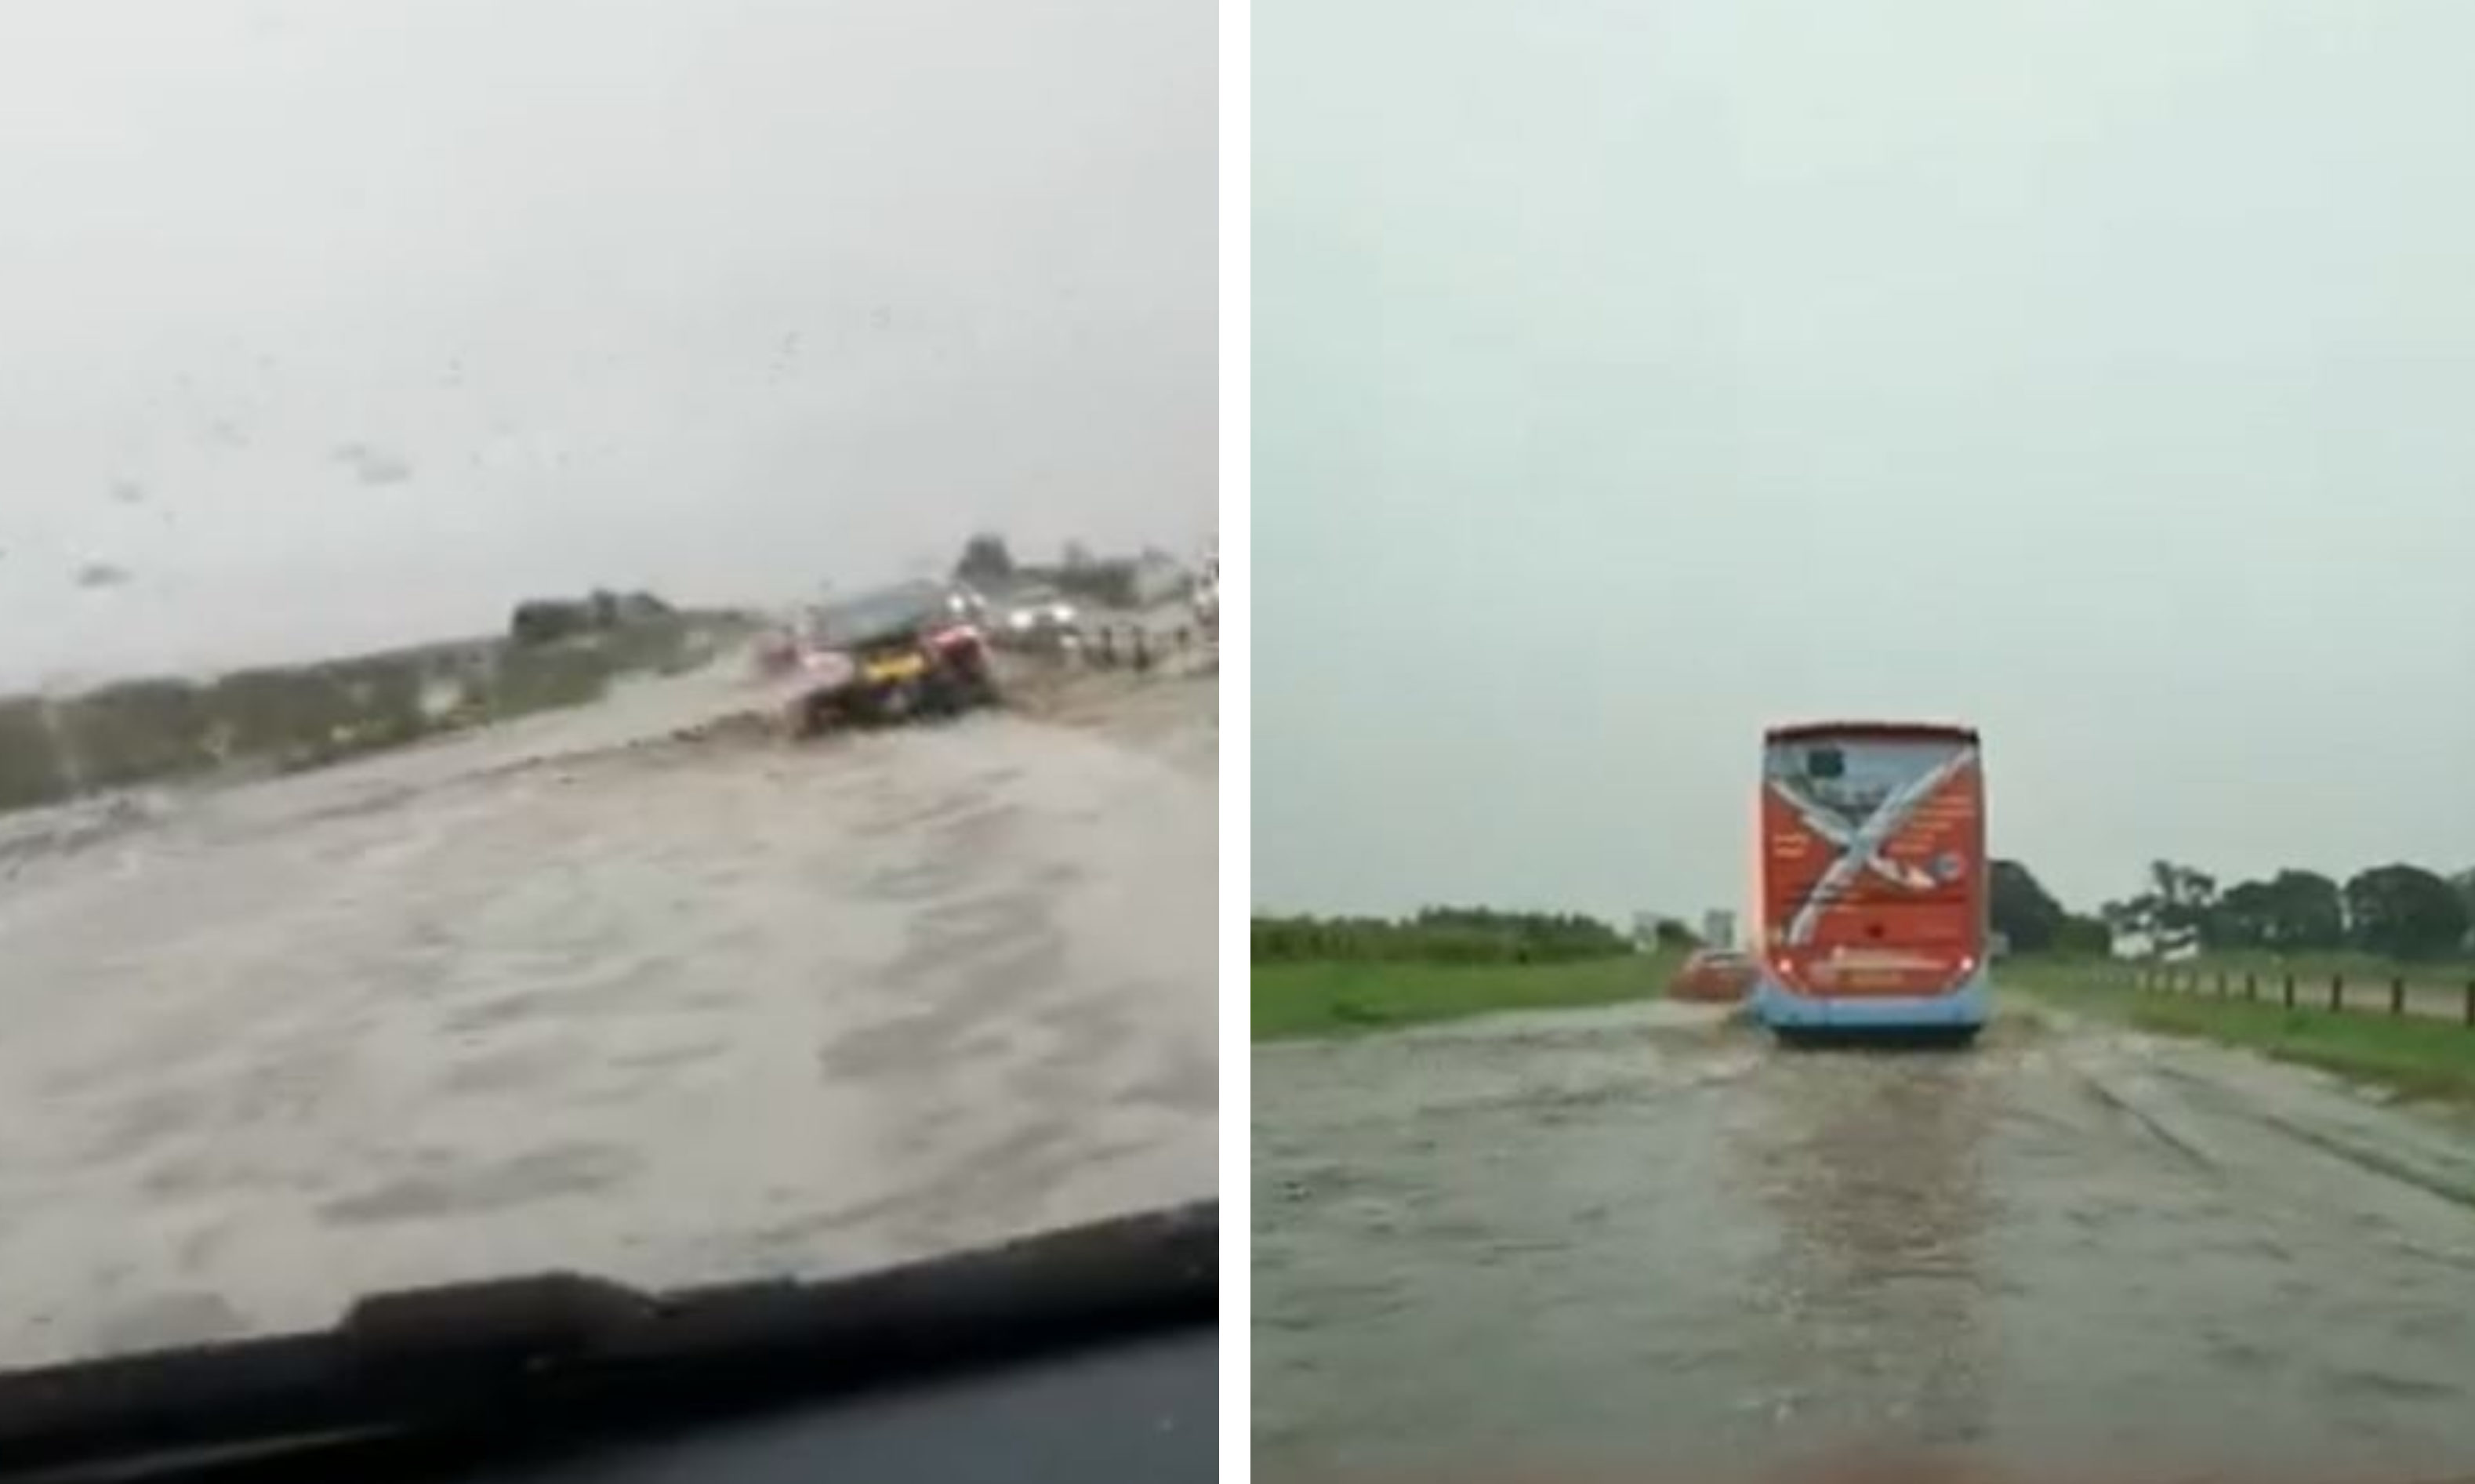 Flooding near Muirdrum on the A92 Dundee to Arbroath. Captured by Kim MacDonald and Mag Guignard-Duff.